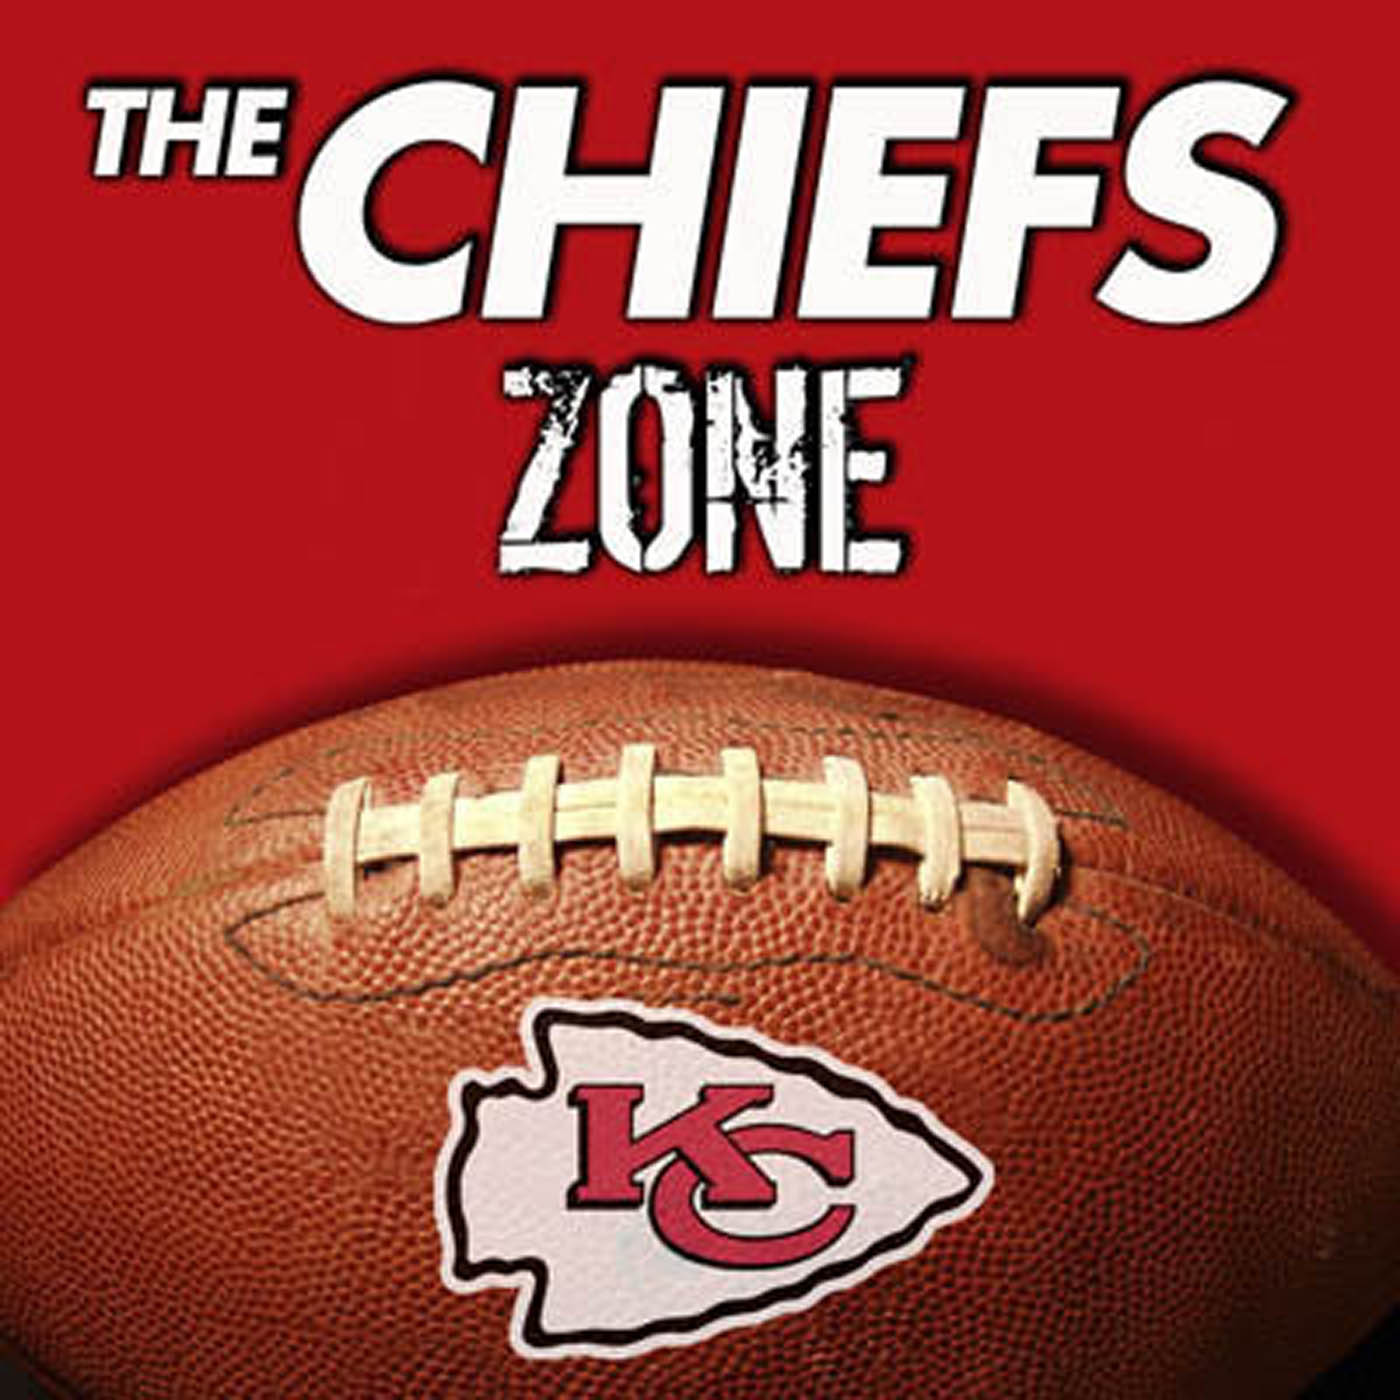 The Chiefs Zone